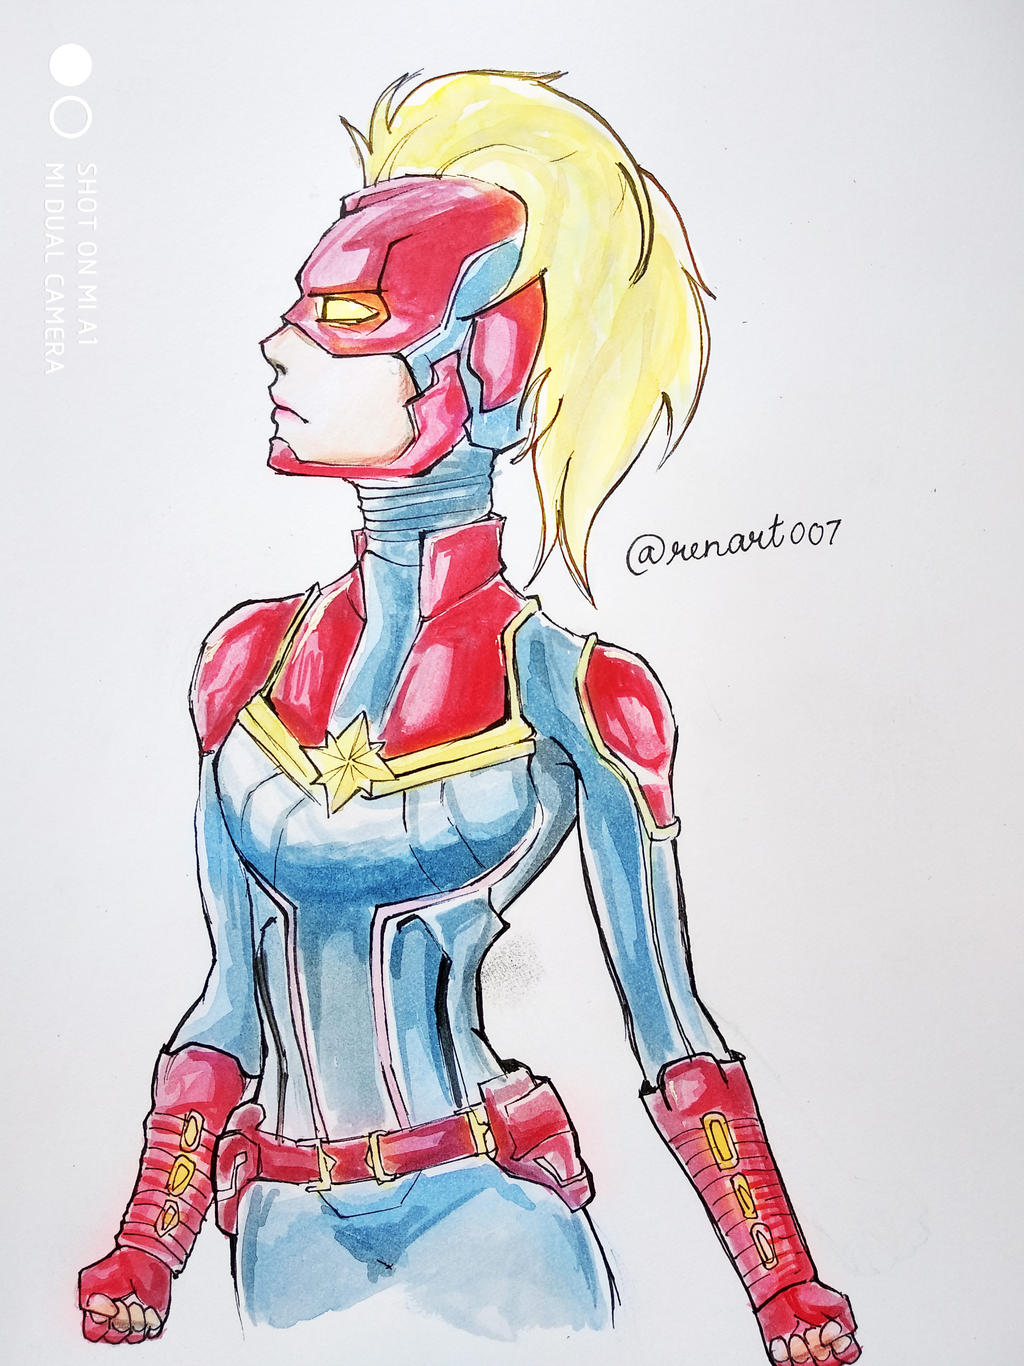 Captain Marvel By Mayursingh007 On Deviantart Captain marvel is a believer in truth and justice but also fights between the aggressiveness and quick tempered character that is within her. deviantart